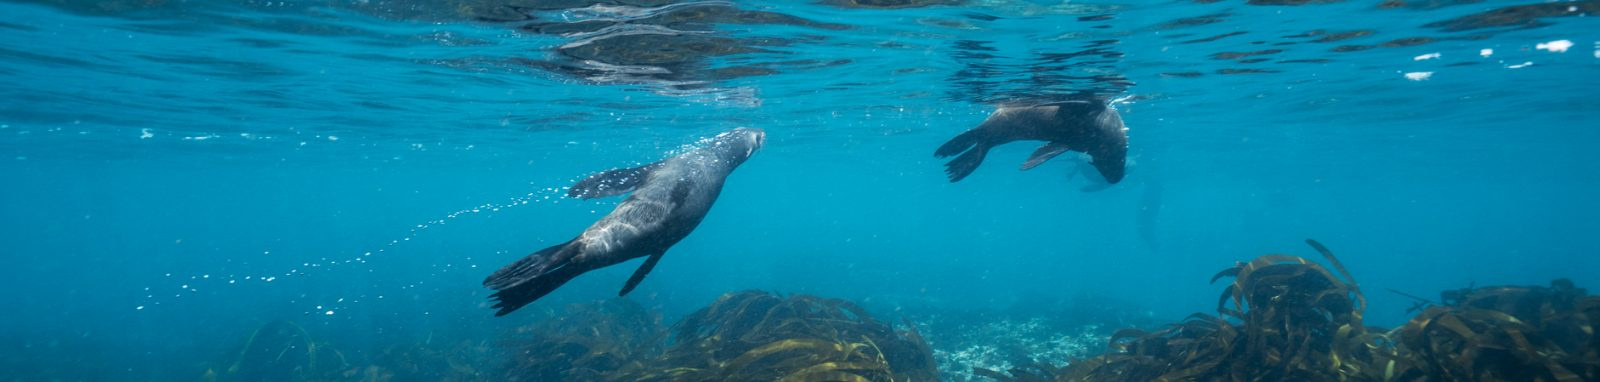 Seal snorkeling clean water hout bay animal ocean